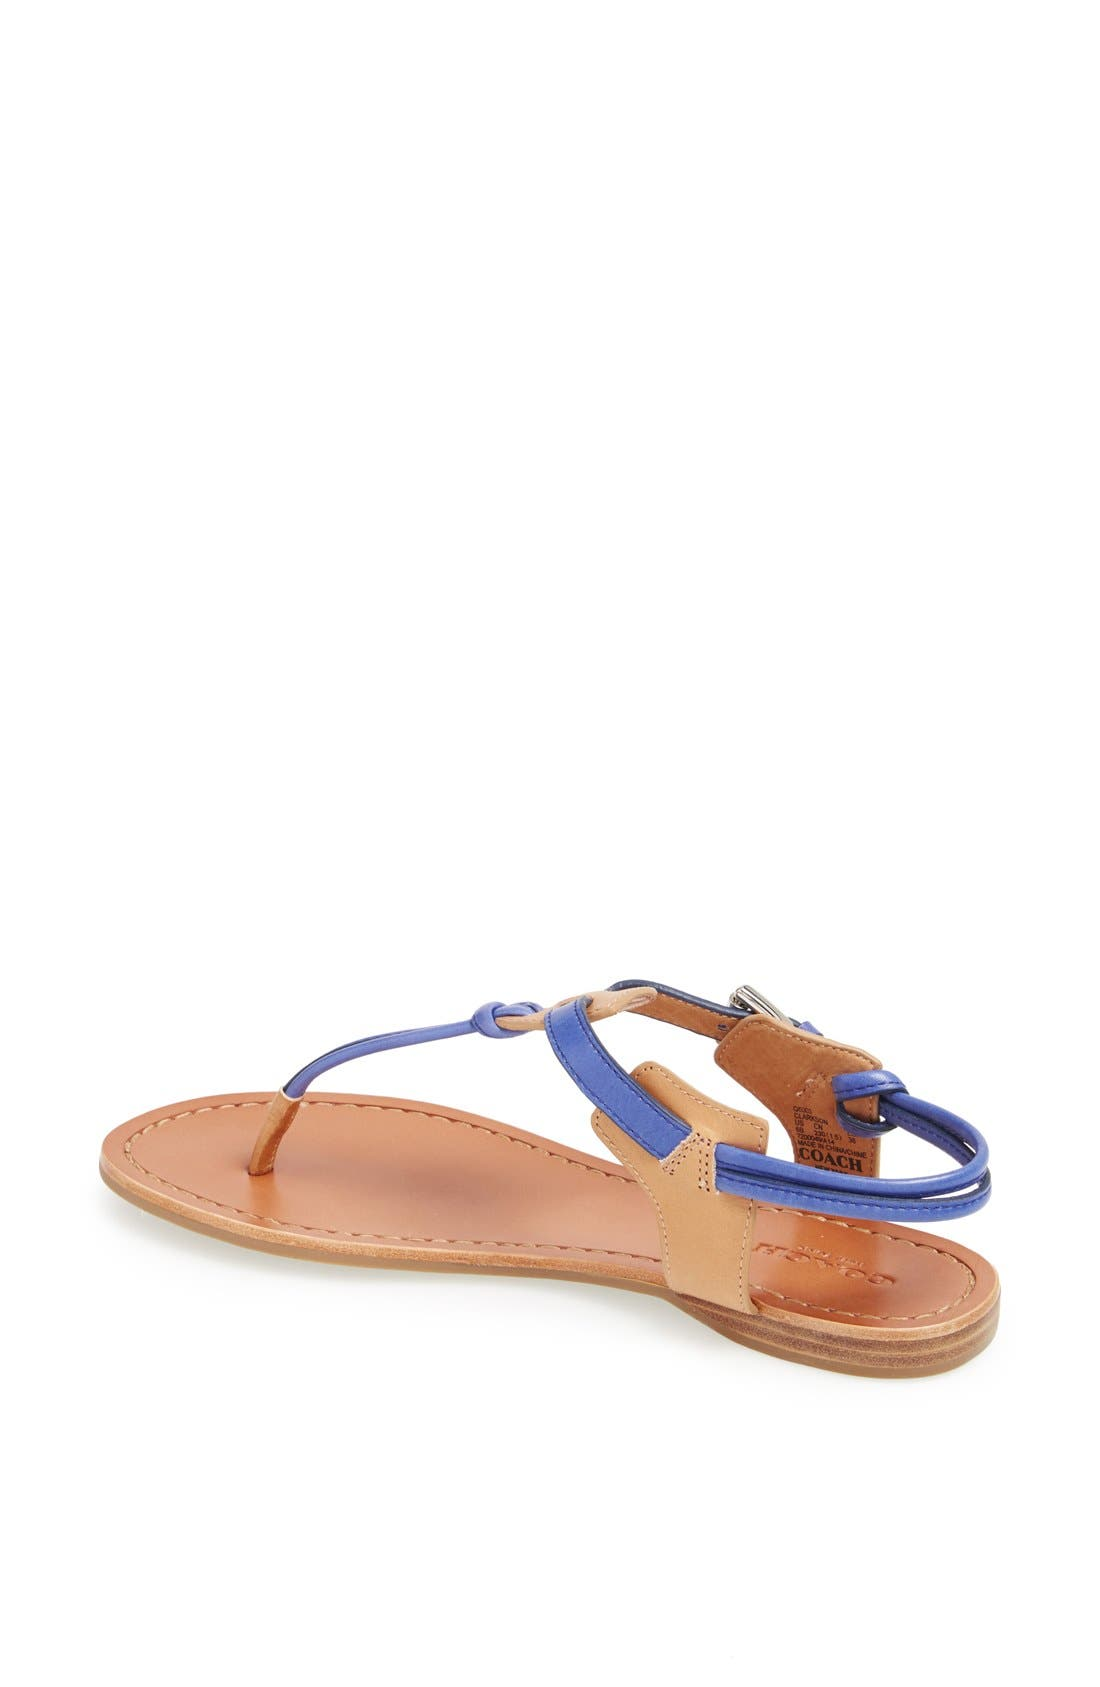 Alternate Image 2  - COACH 'Clarkson' Sandal